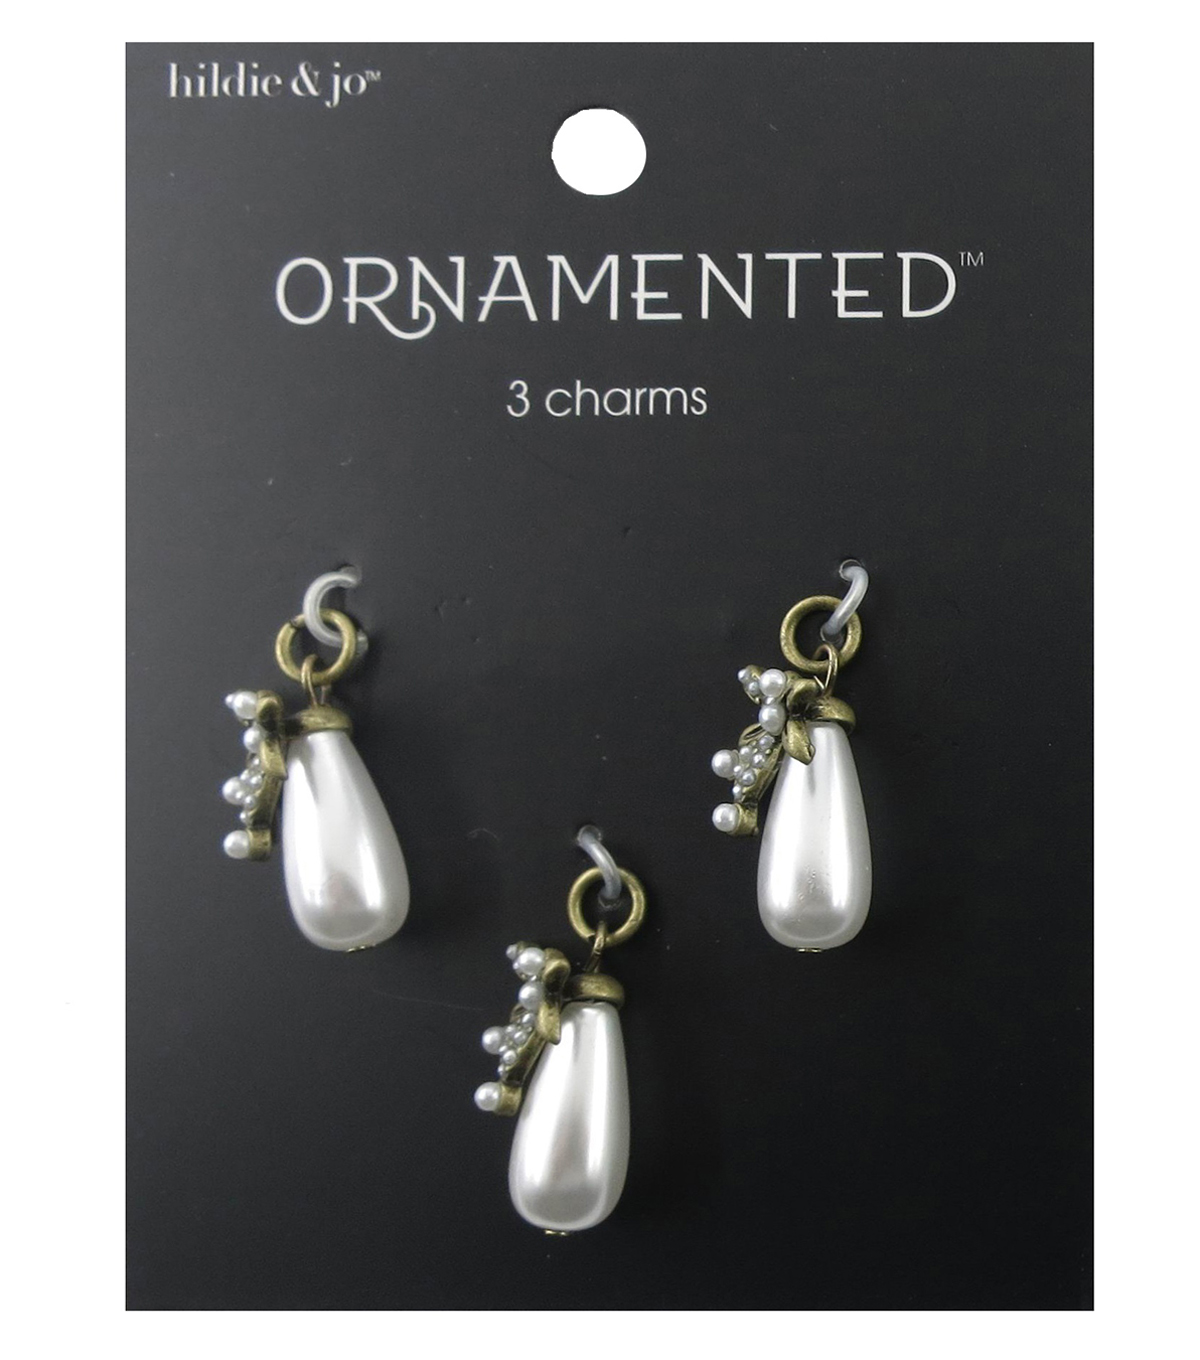 hildie & jo™ Ornamented 3 Pack Antique Gold Charms-Teardrop Pearl